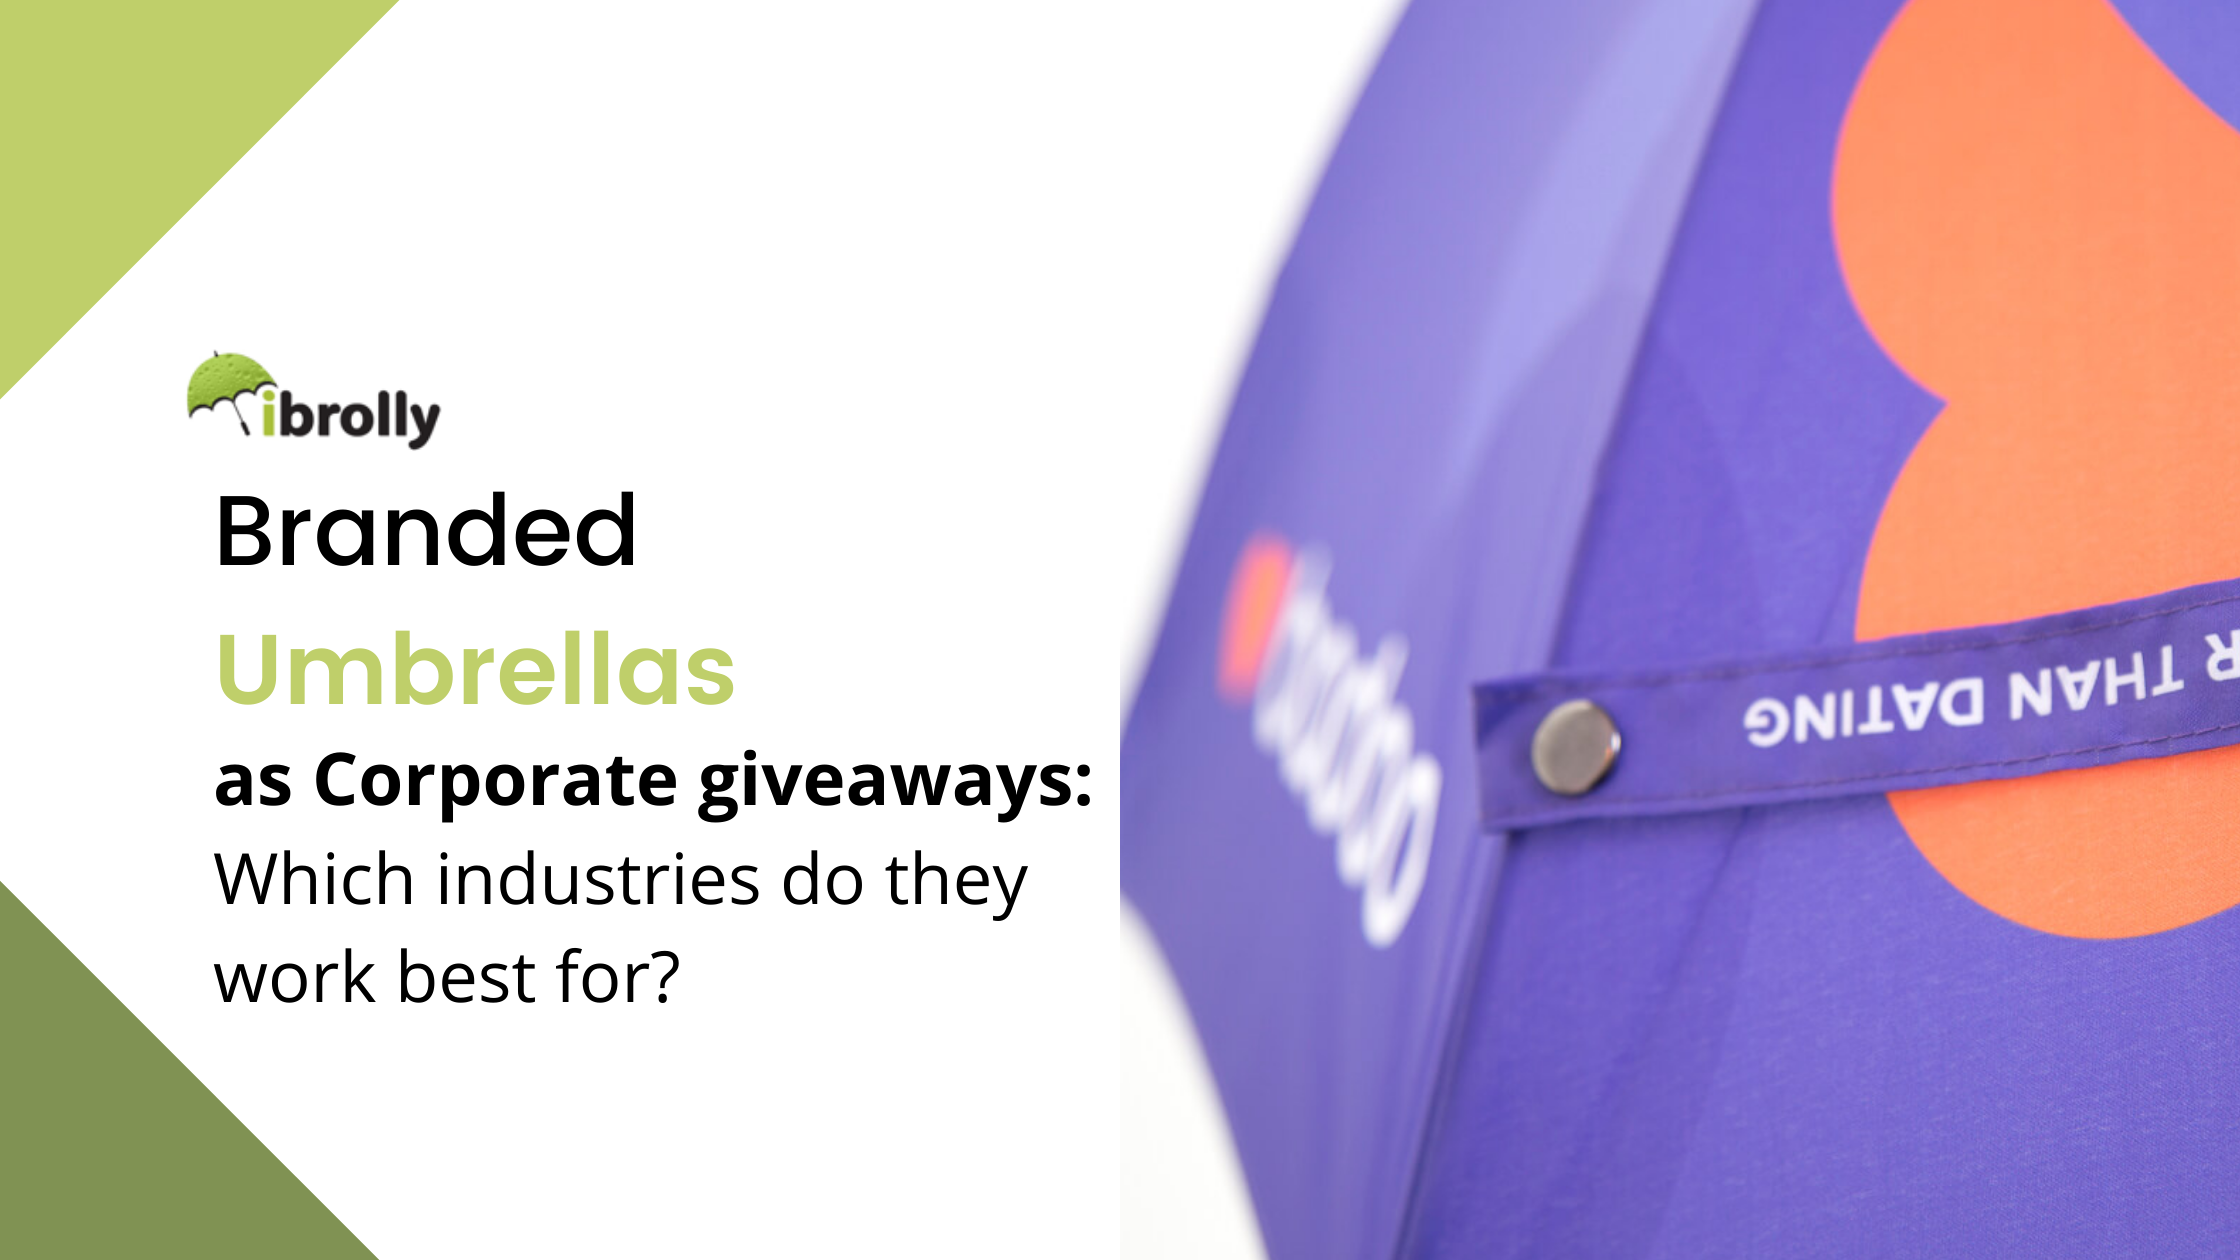 Umbrellas as Corporate giveaways: Which industries do they work best for?